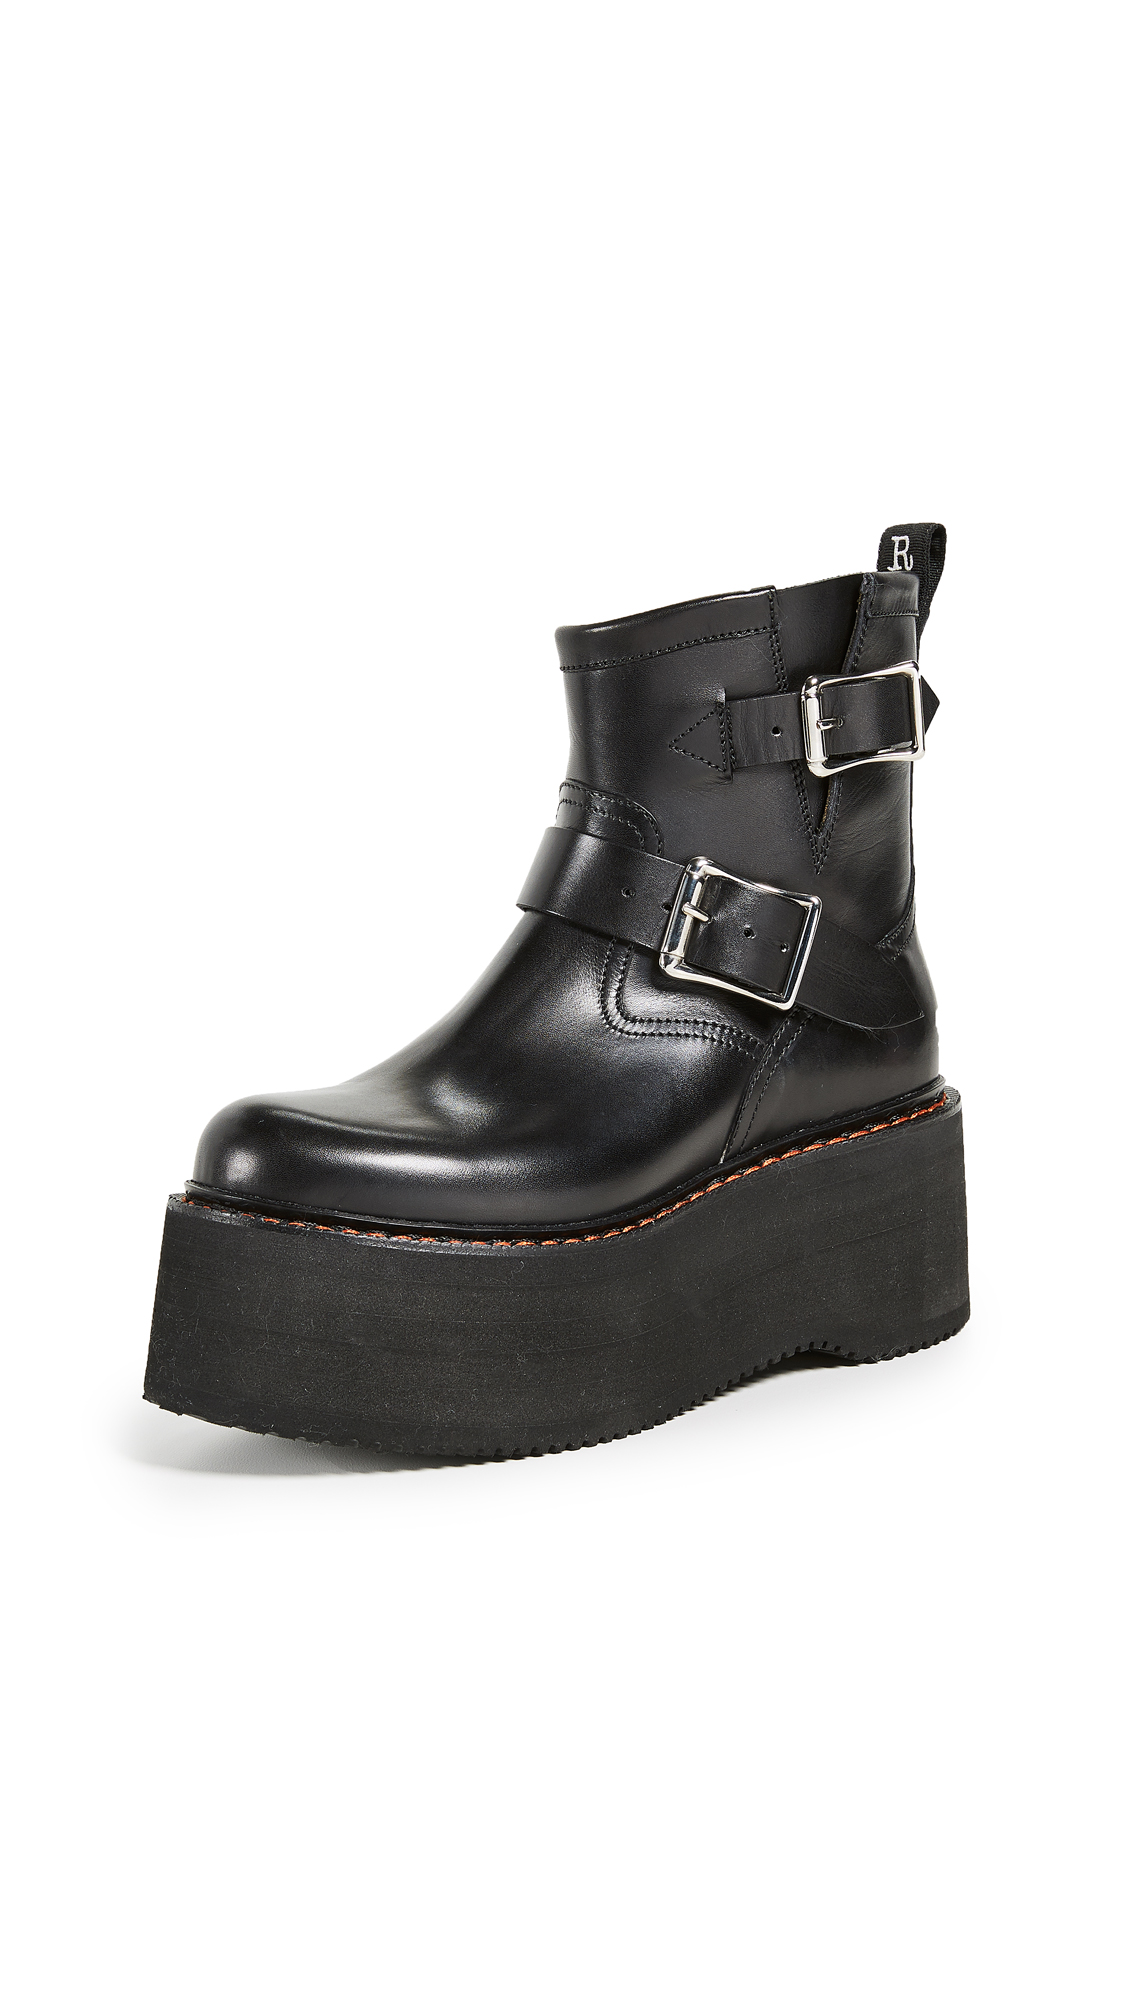 R13 Double Stack Engineer Boots - Black